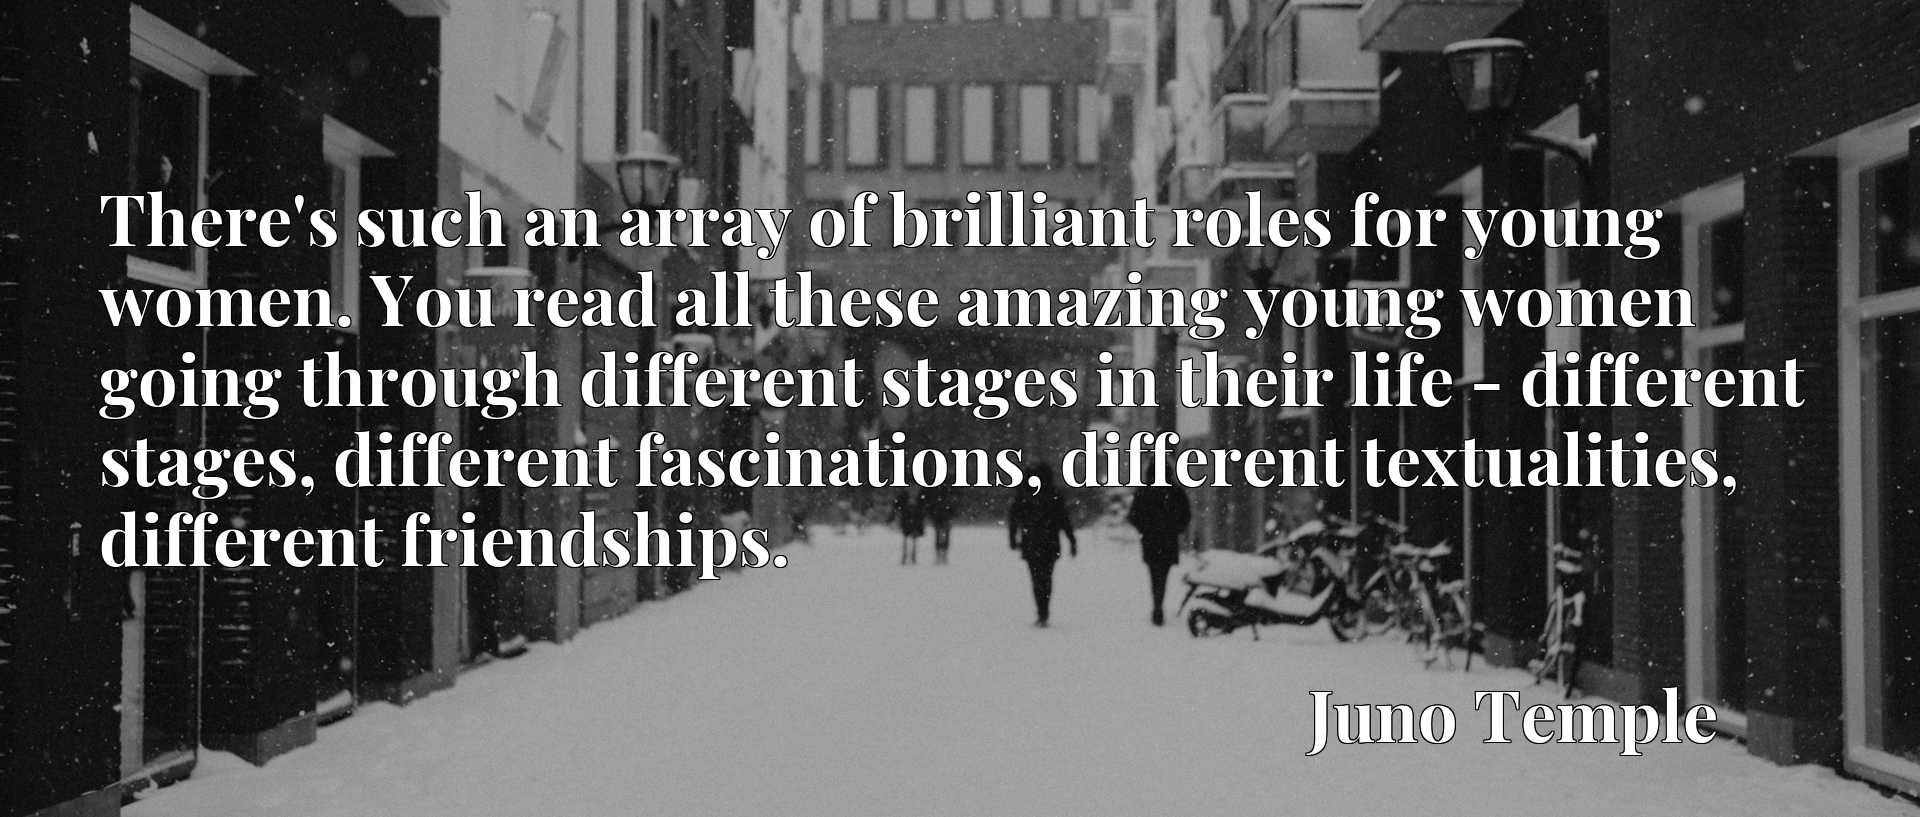 There's such an array of brilliant roles for young women. You read all these amazing young women going through different stages in their life - different stages, different fascinations, different textualities, different friendships.